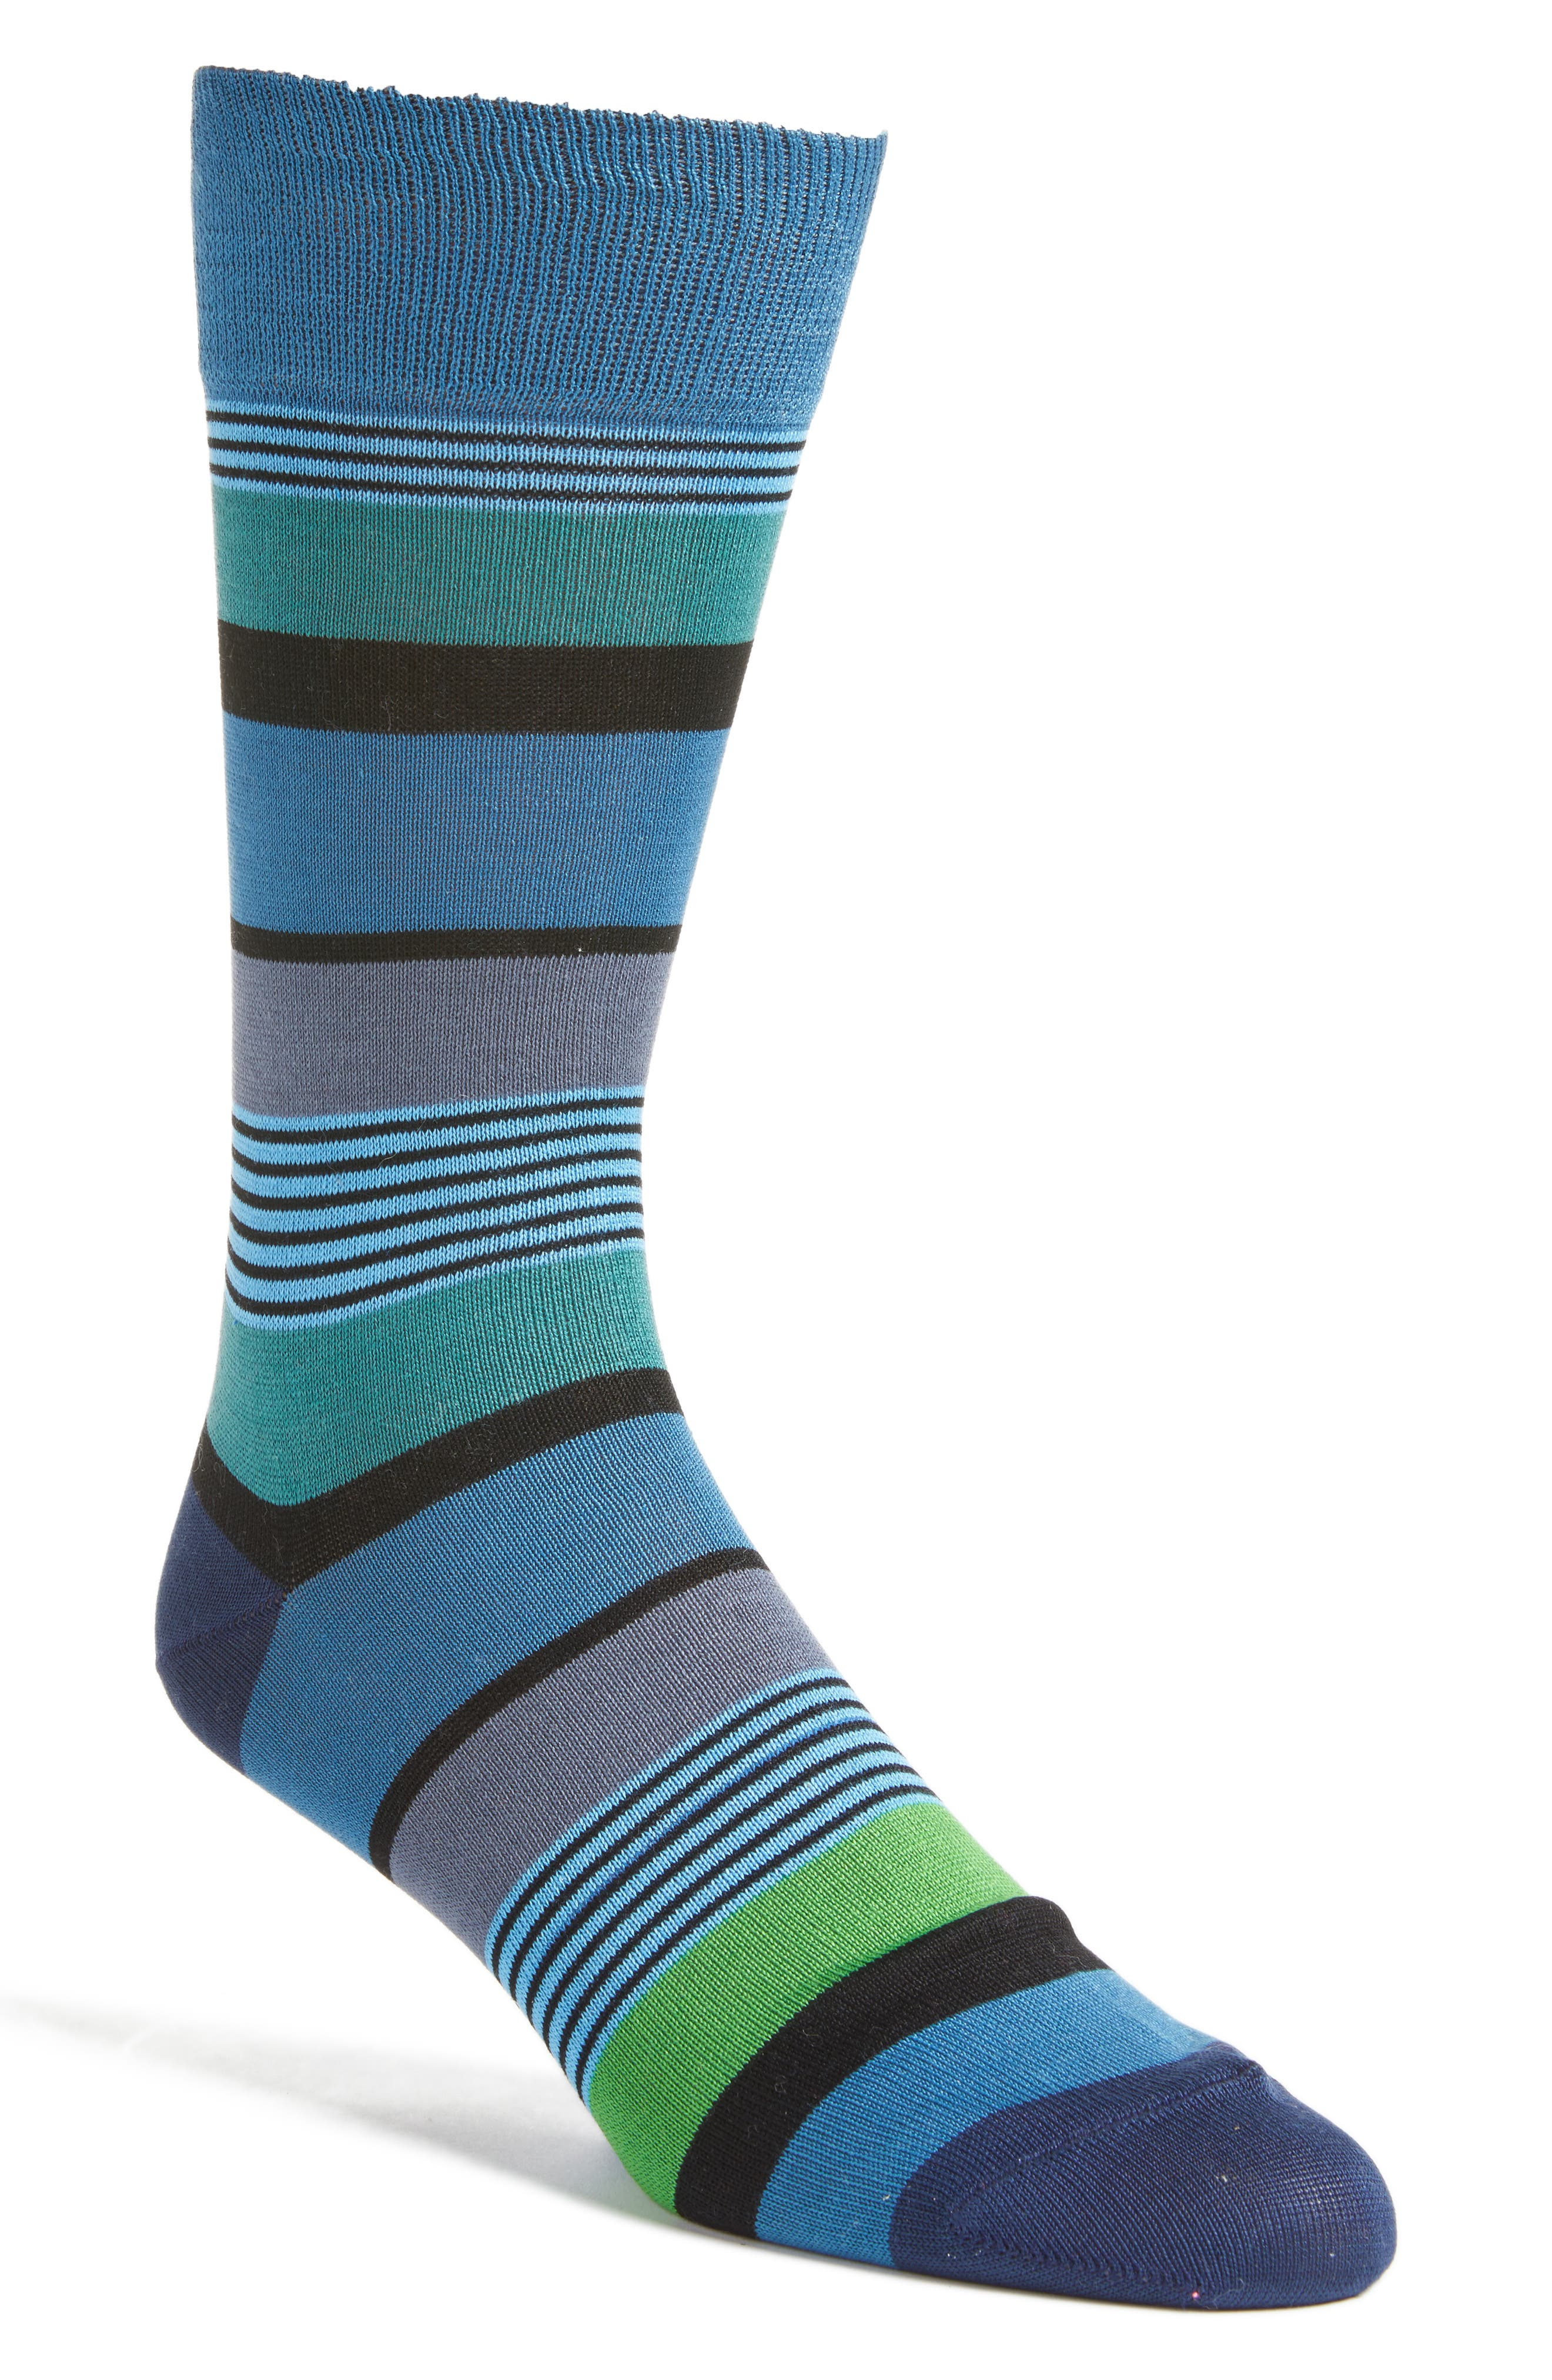 Alternate Image 1 Selected - Paul Smith Davis Stripe Crew Socks